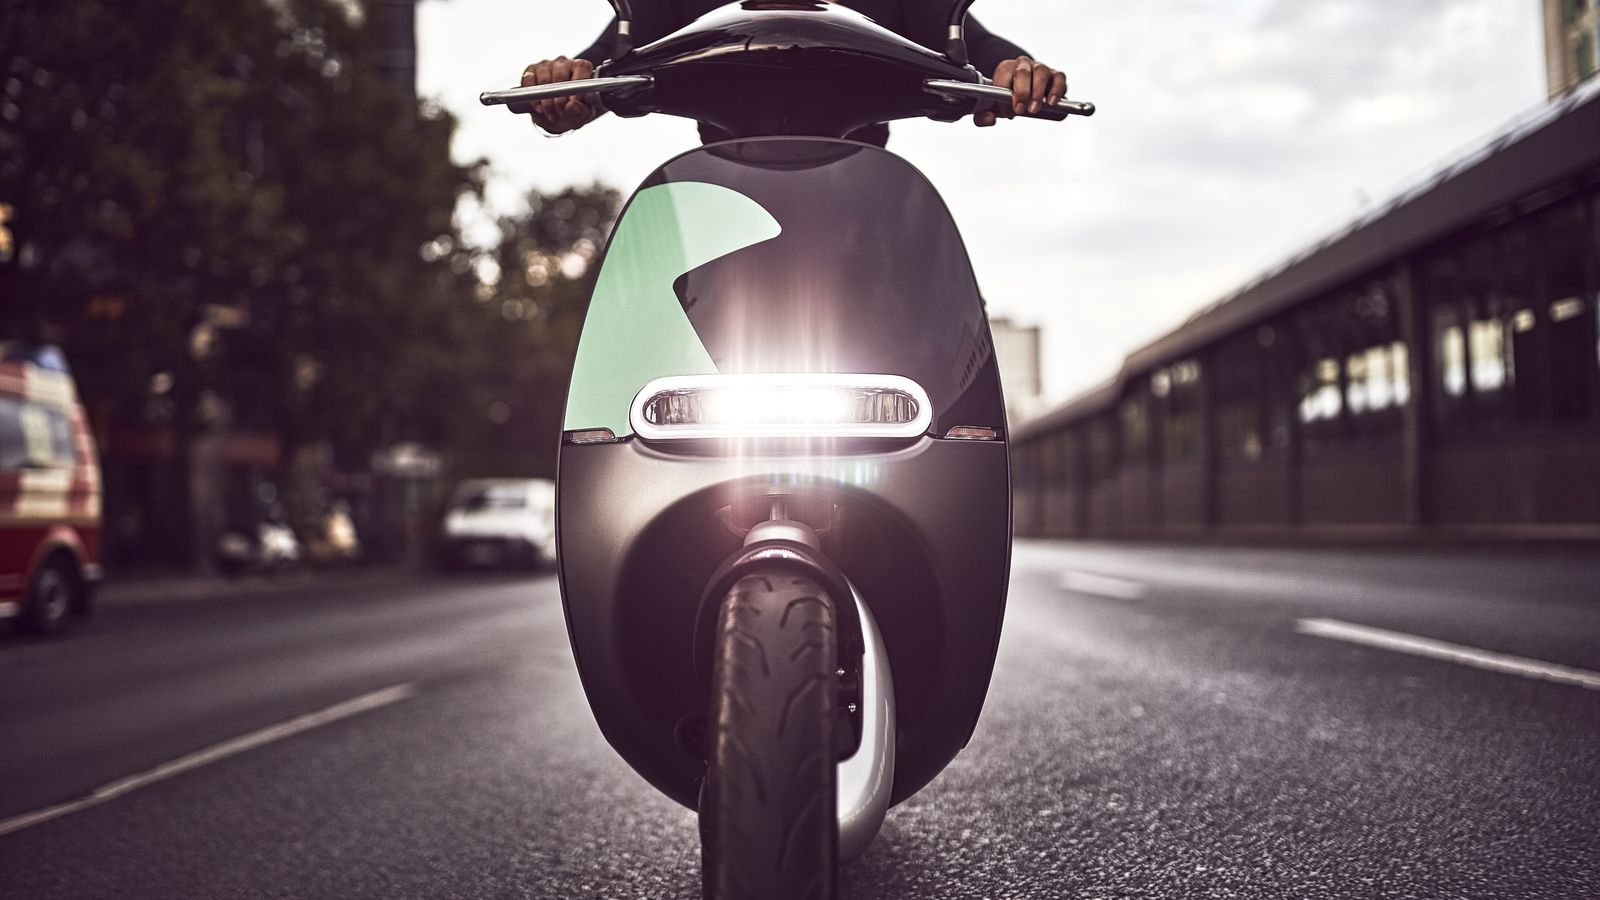 gogoro e scooter sharing is coming to paris the verge. Black Bedroom Furniture Sets. Home Design Ideas